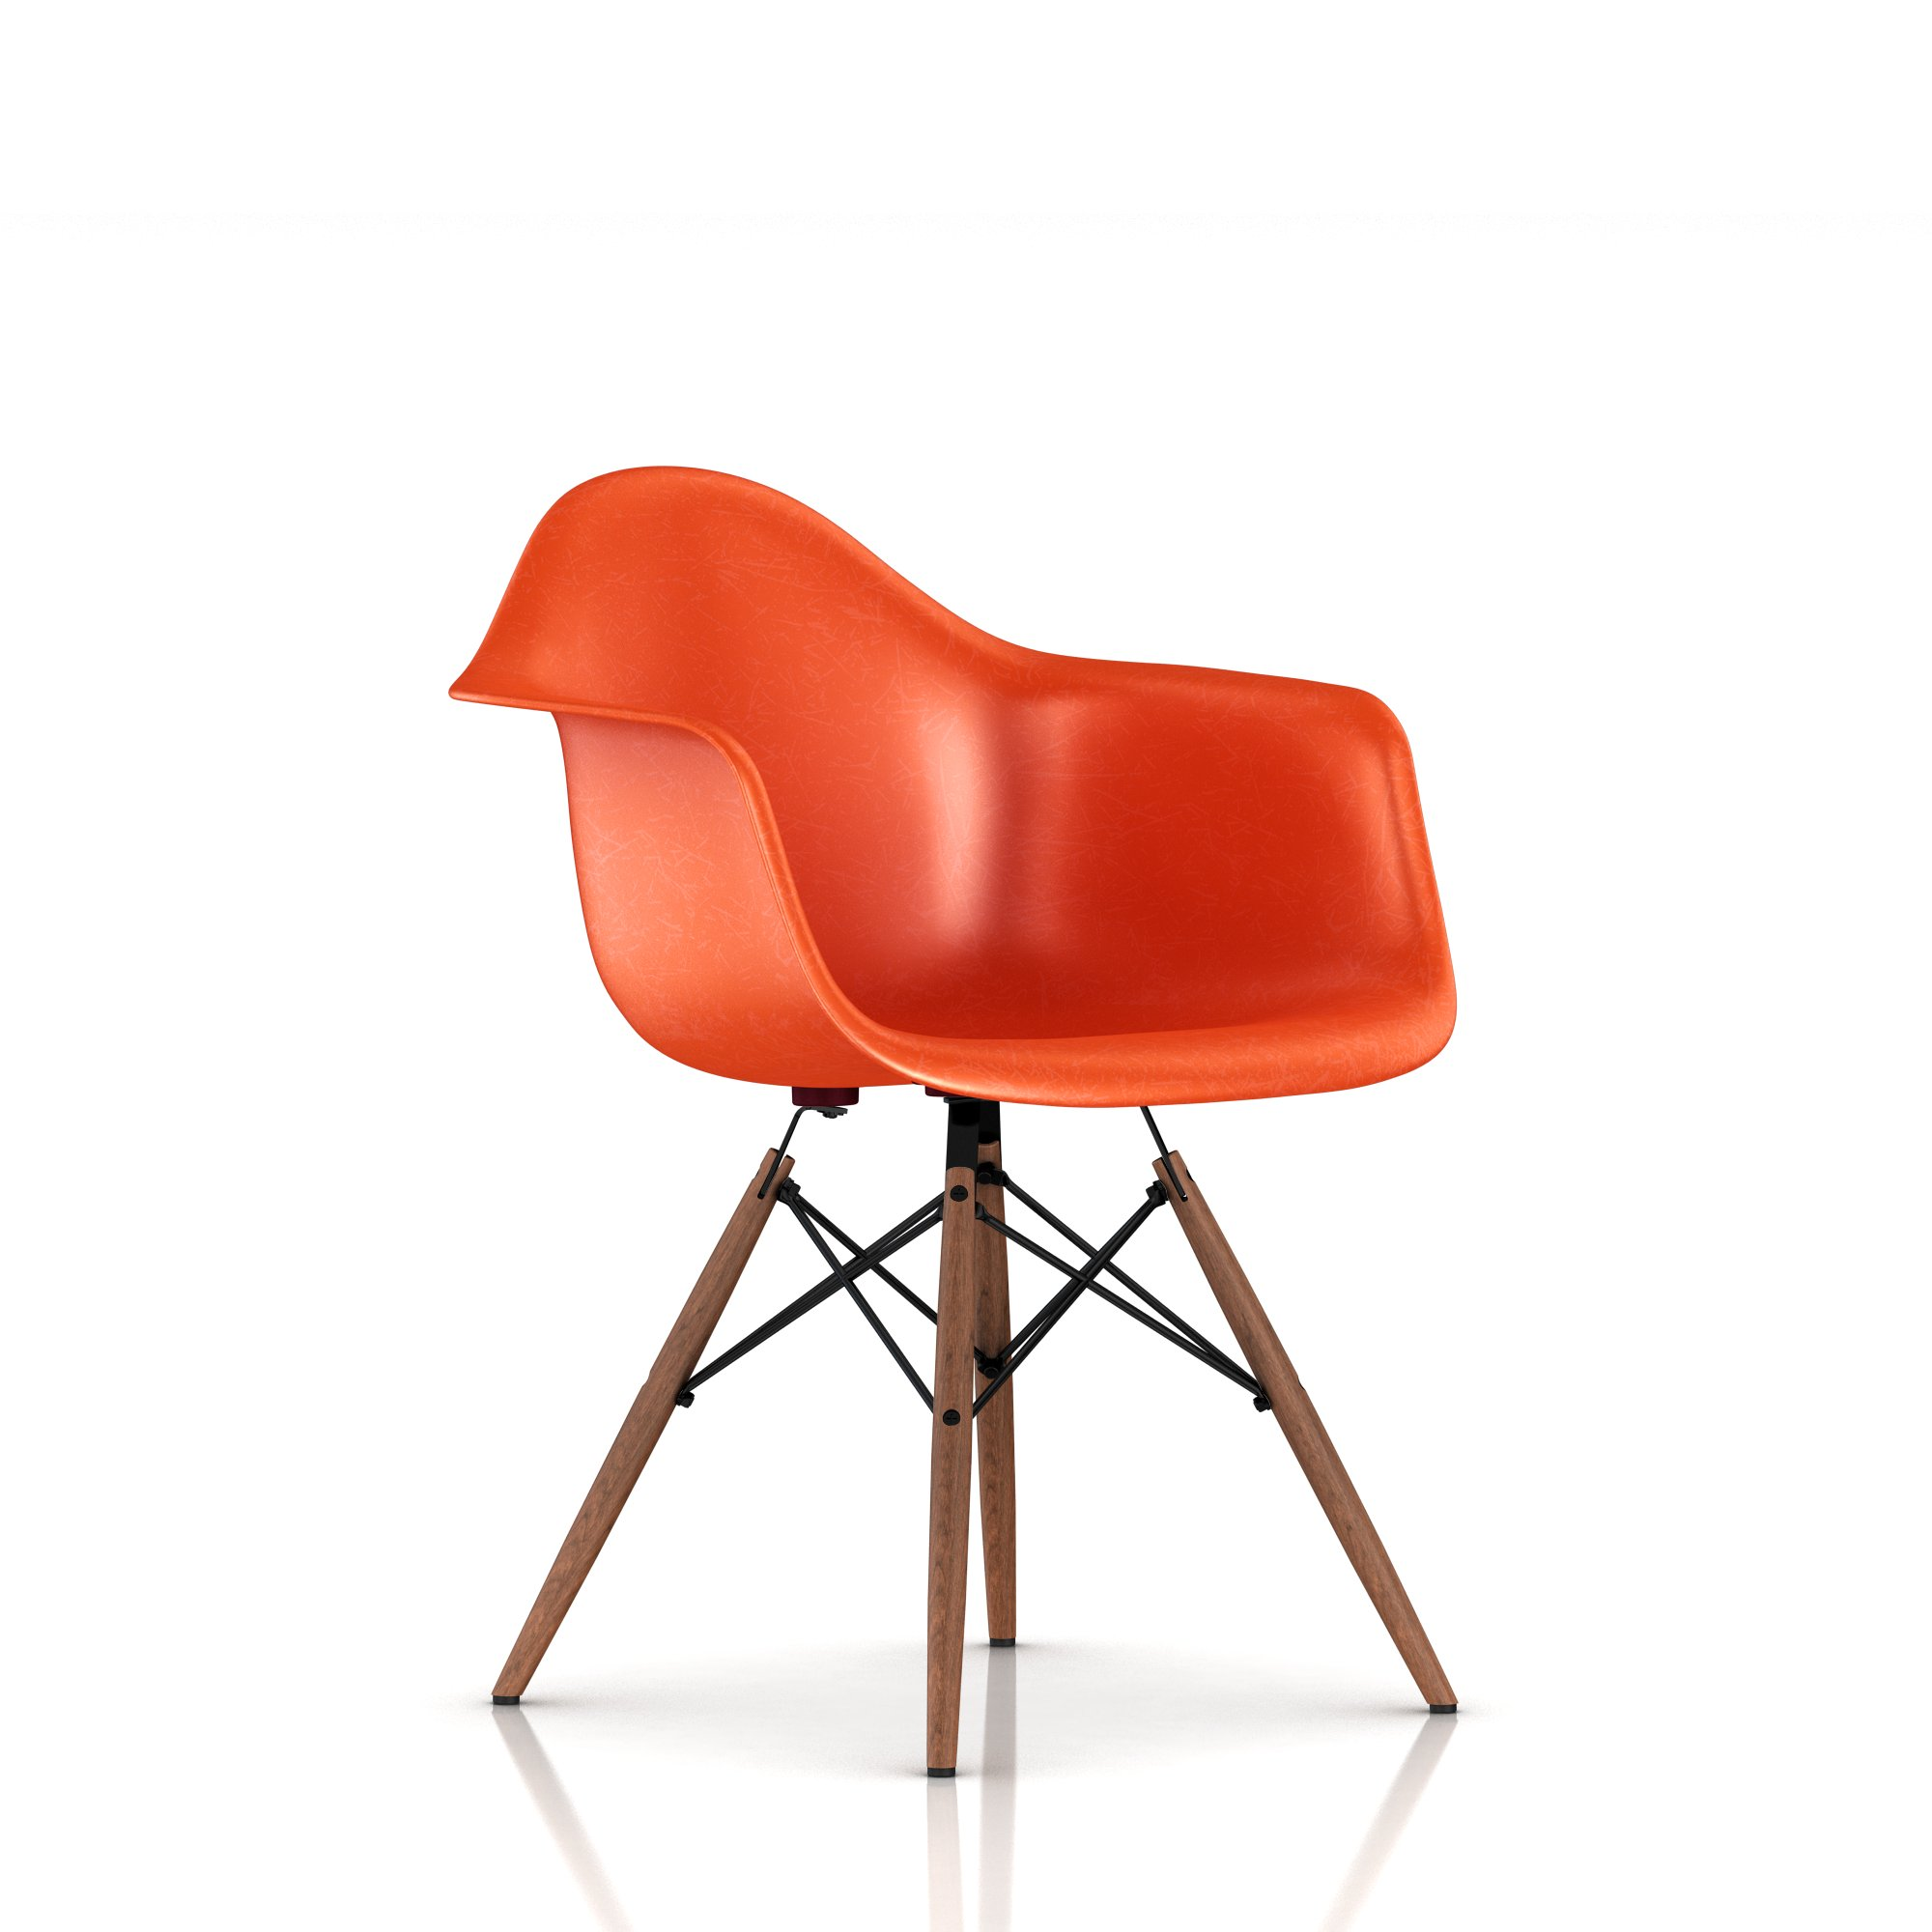 Red Orange + Walnut leg